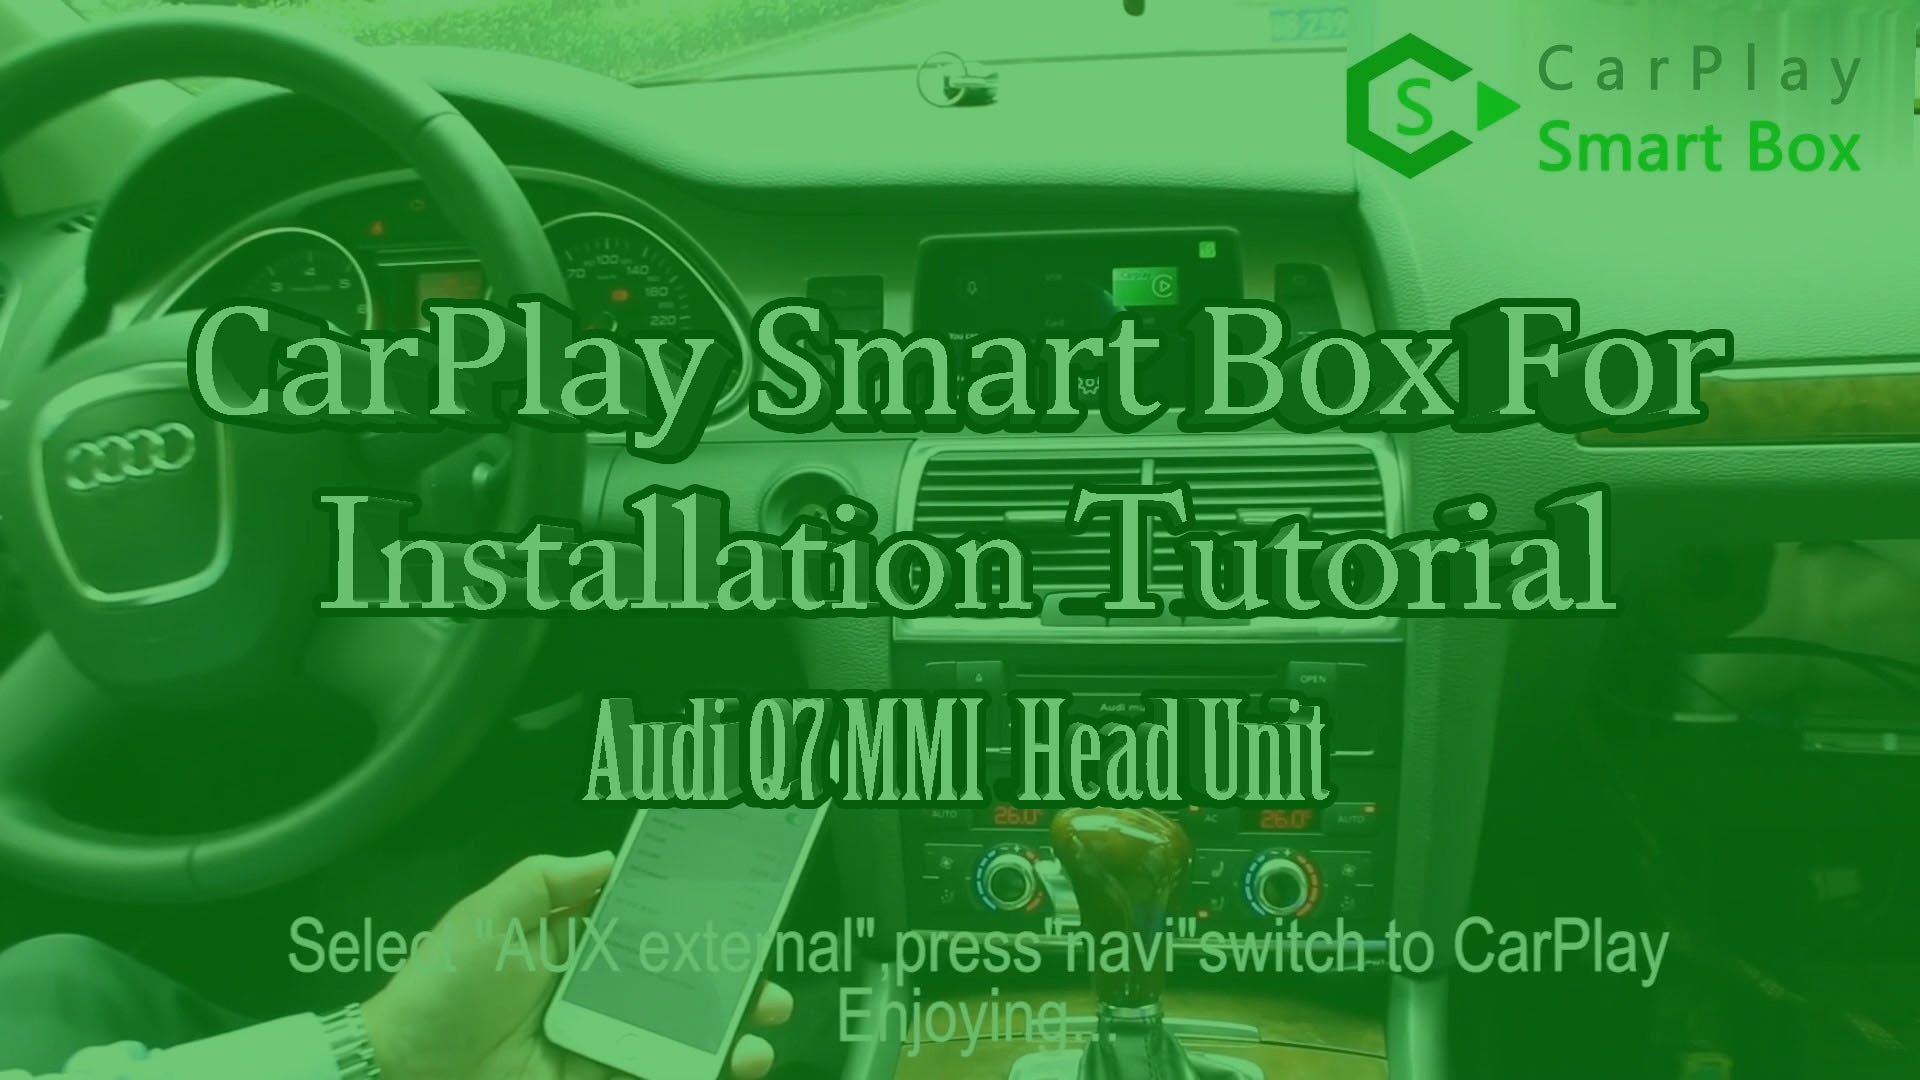 (Audi MMI Head Unit) Wireless Apple CarPlay Smart Box Installation for Audi A6 A7 A8 Q7 C6